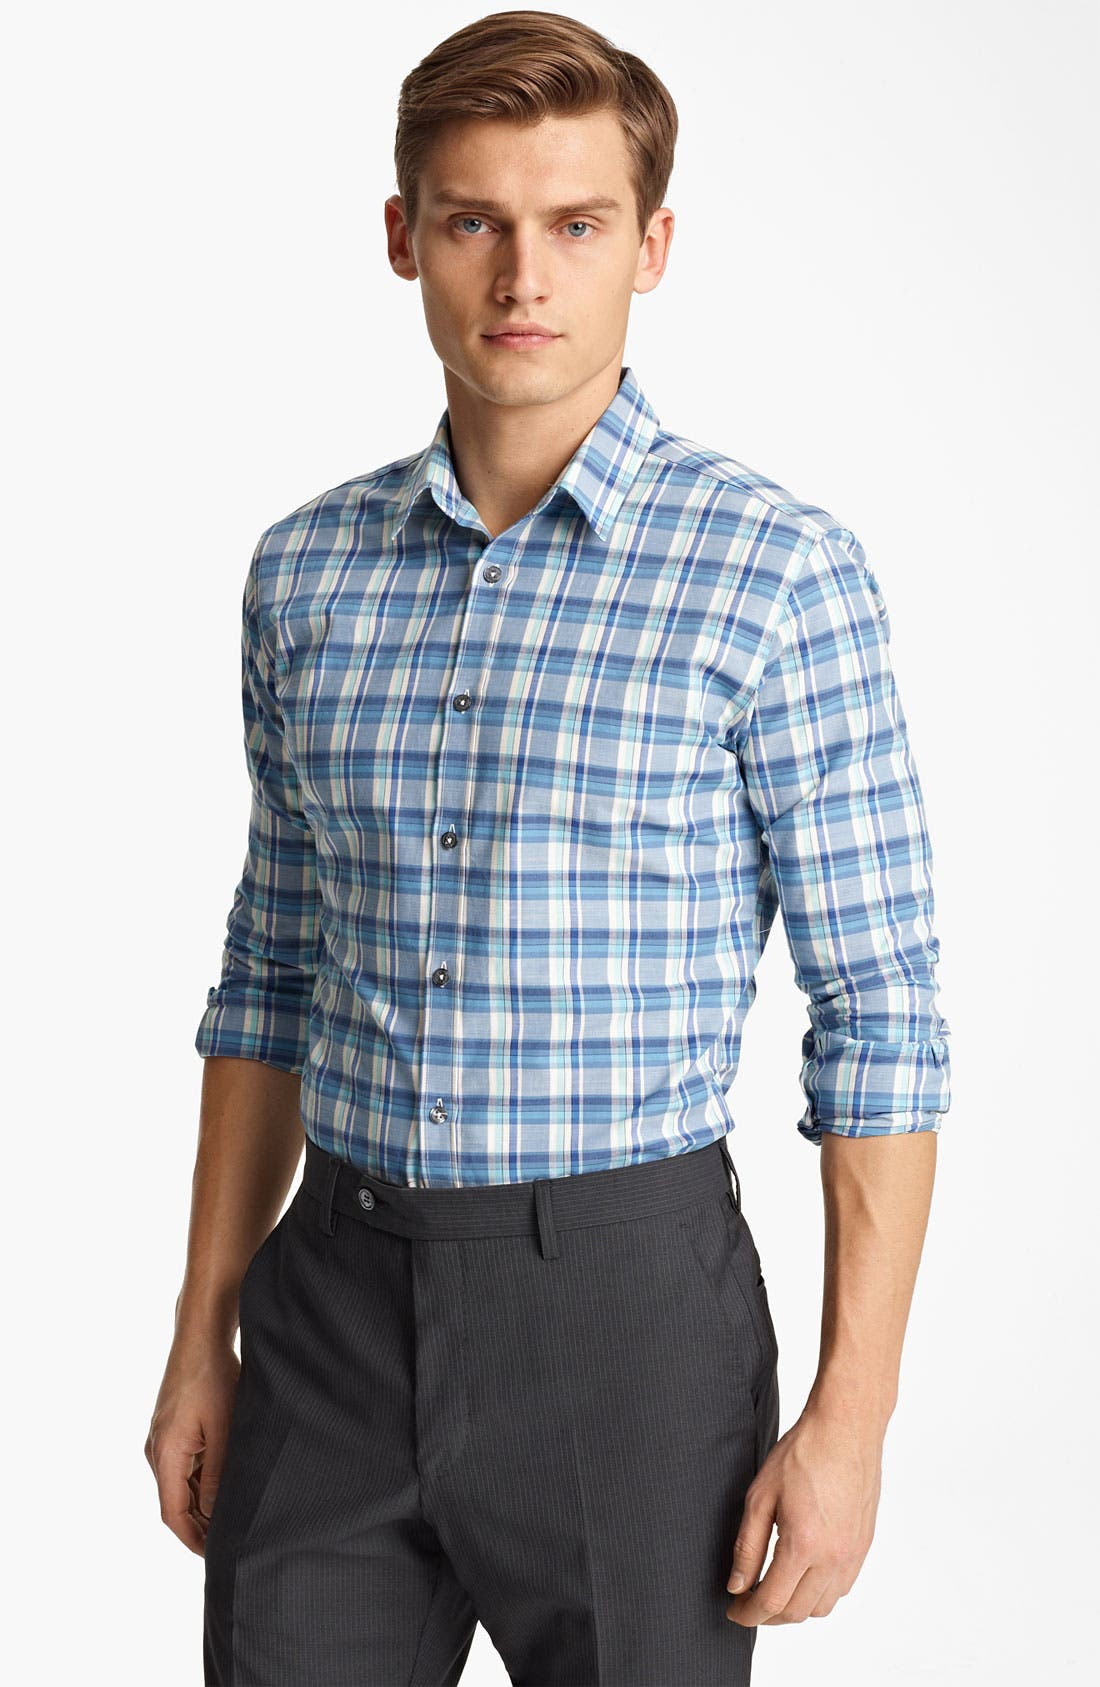 Alternate Image 1 Selected - PS Paul Smith Slim Fit Plaid Woven Shirt